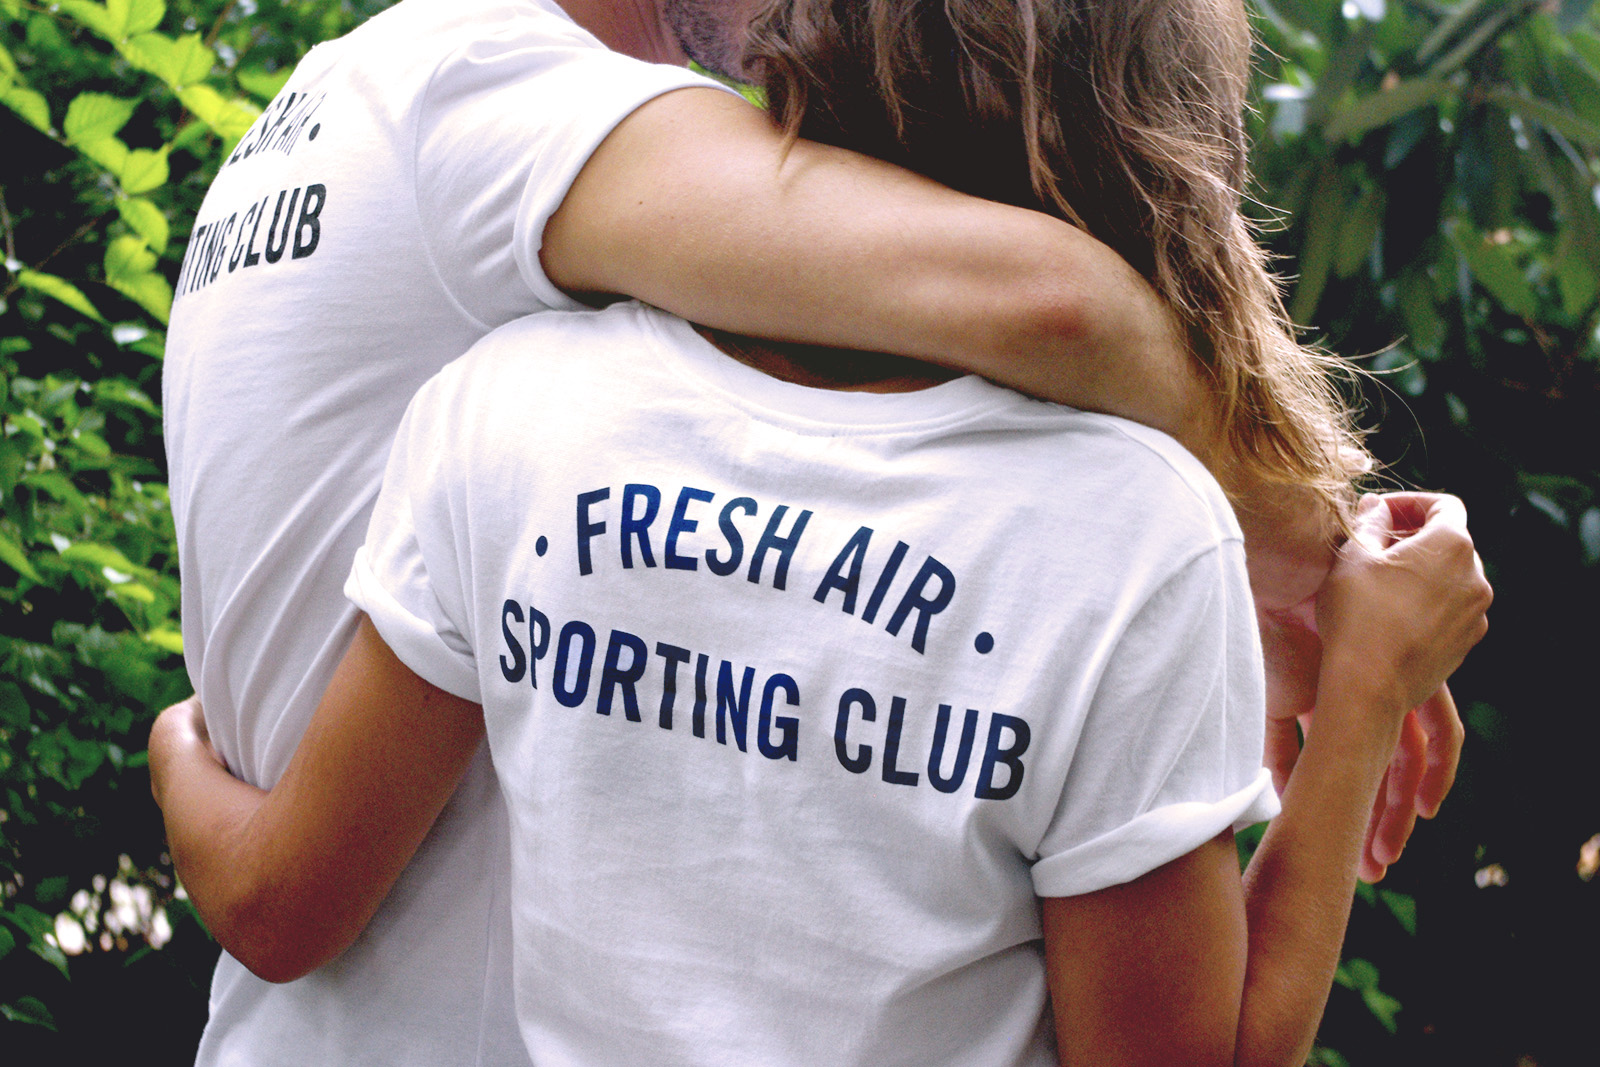 Sacrebleu-lesothers-fresh-air-sporting-club-5